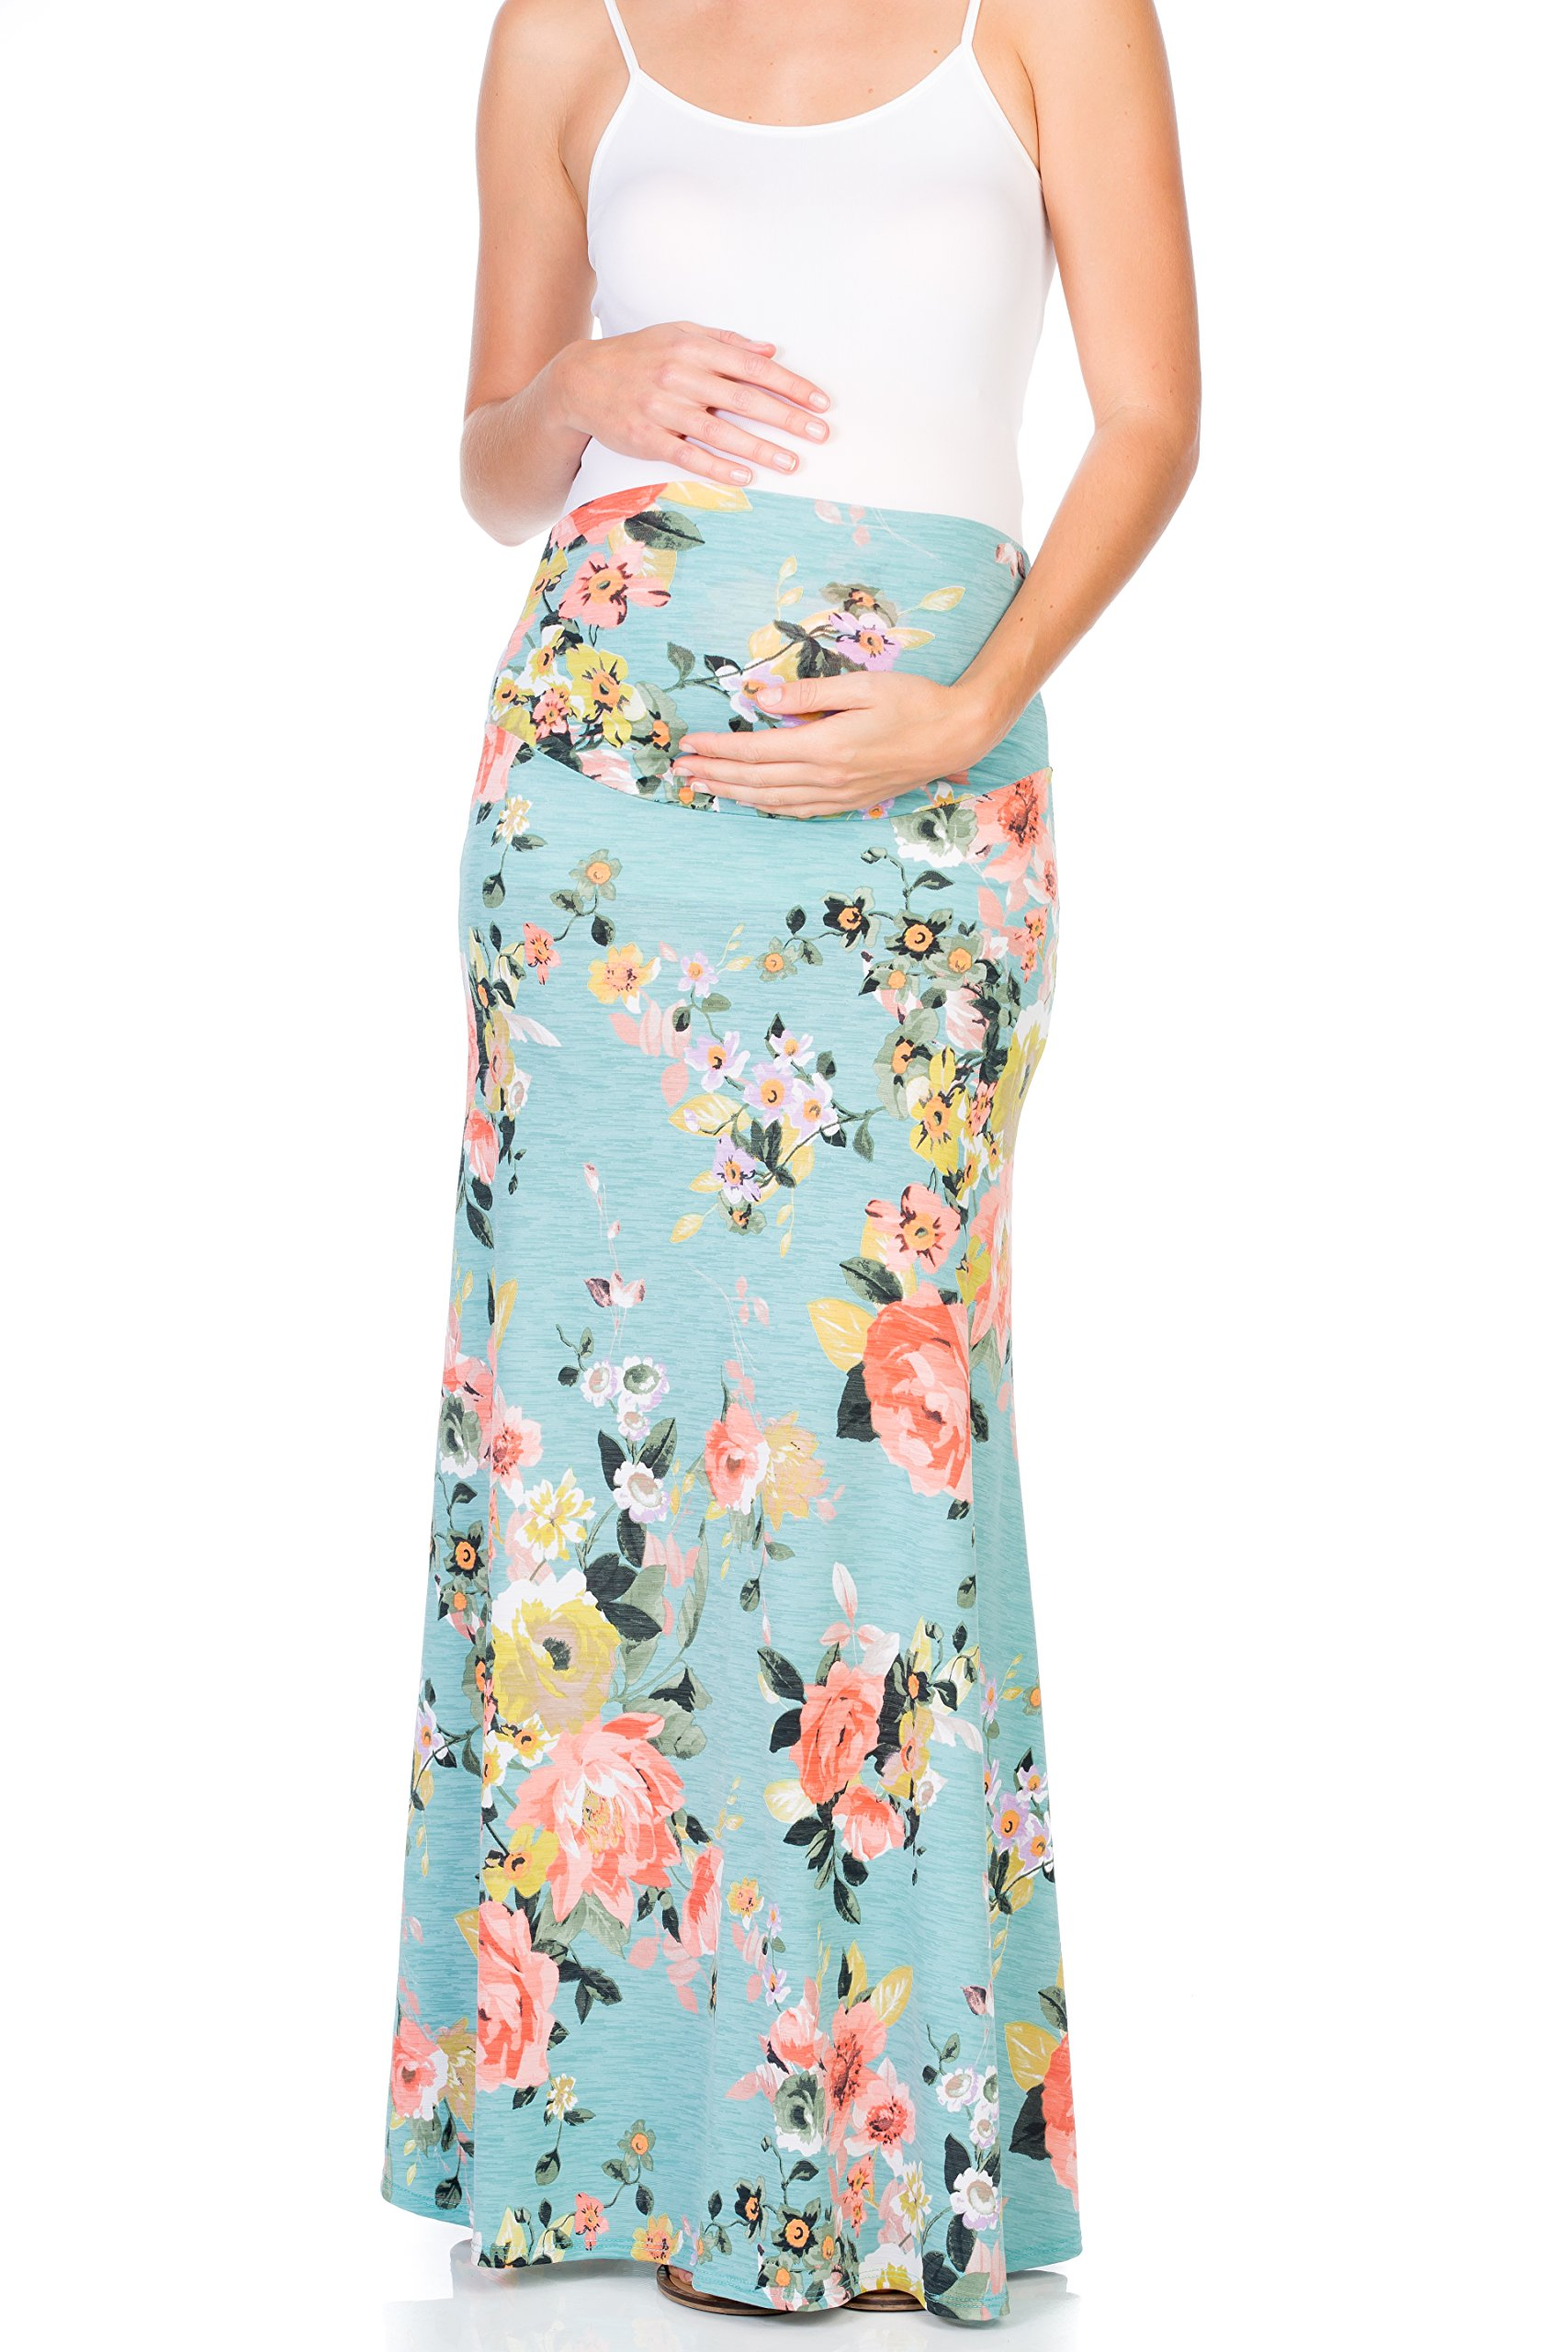 My Bump Women's Maternity Maxi Skirt with Tummy Control(Made in U.S.A) (Medium, Mint Flower)